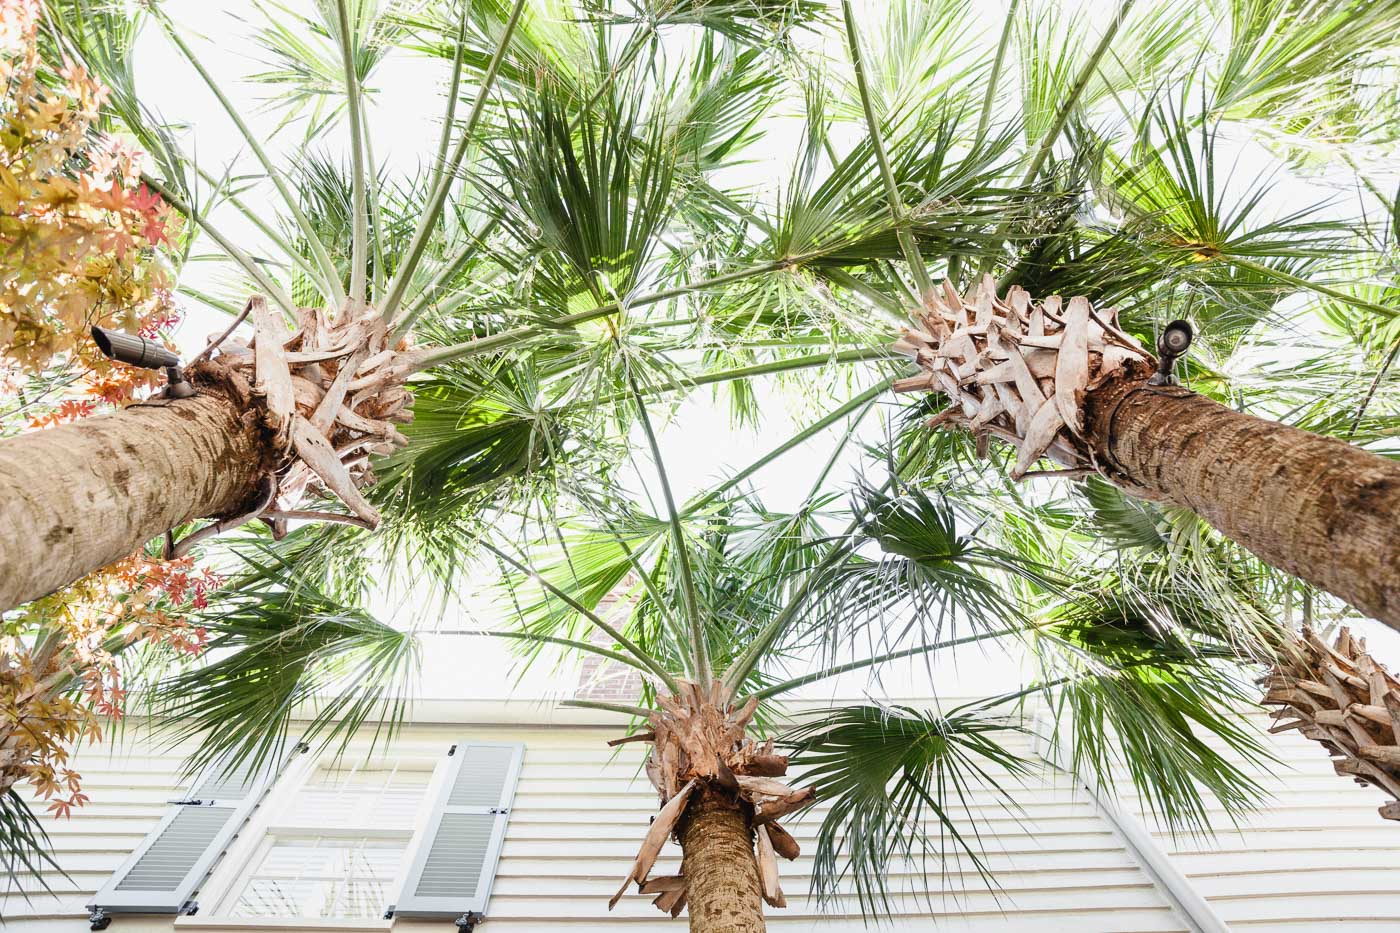 palm trees, charleston palm trees, where to stay in charleston